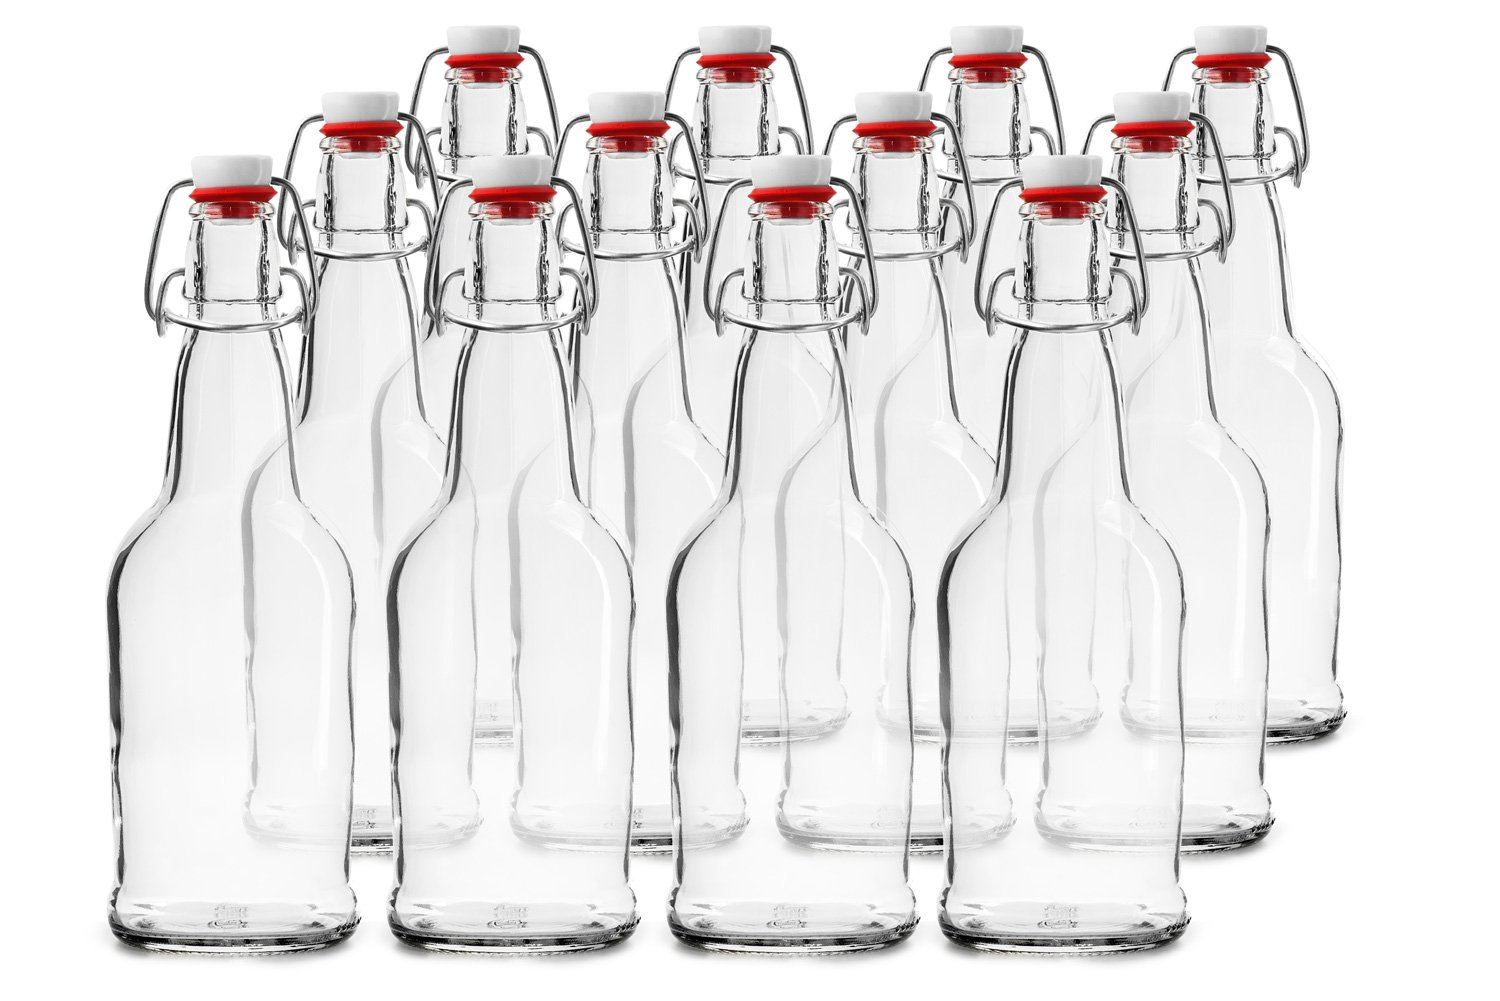 Home Brewing Glass Beer Bottle with Easy Wire Swing Cap & Airtight Rubber Seal | Clear | 16oz | Case of 12 | by Chef's Star by Chef's Star